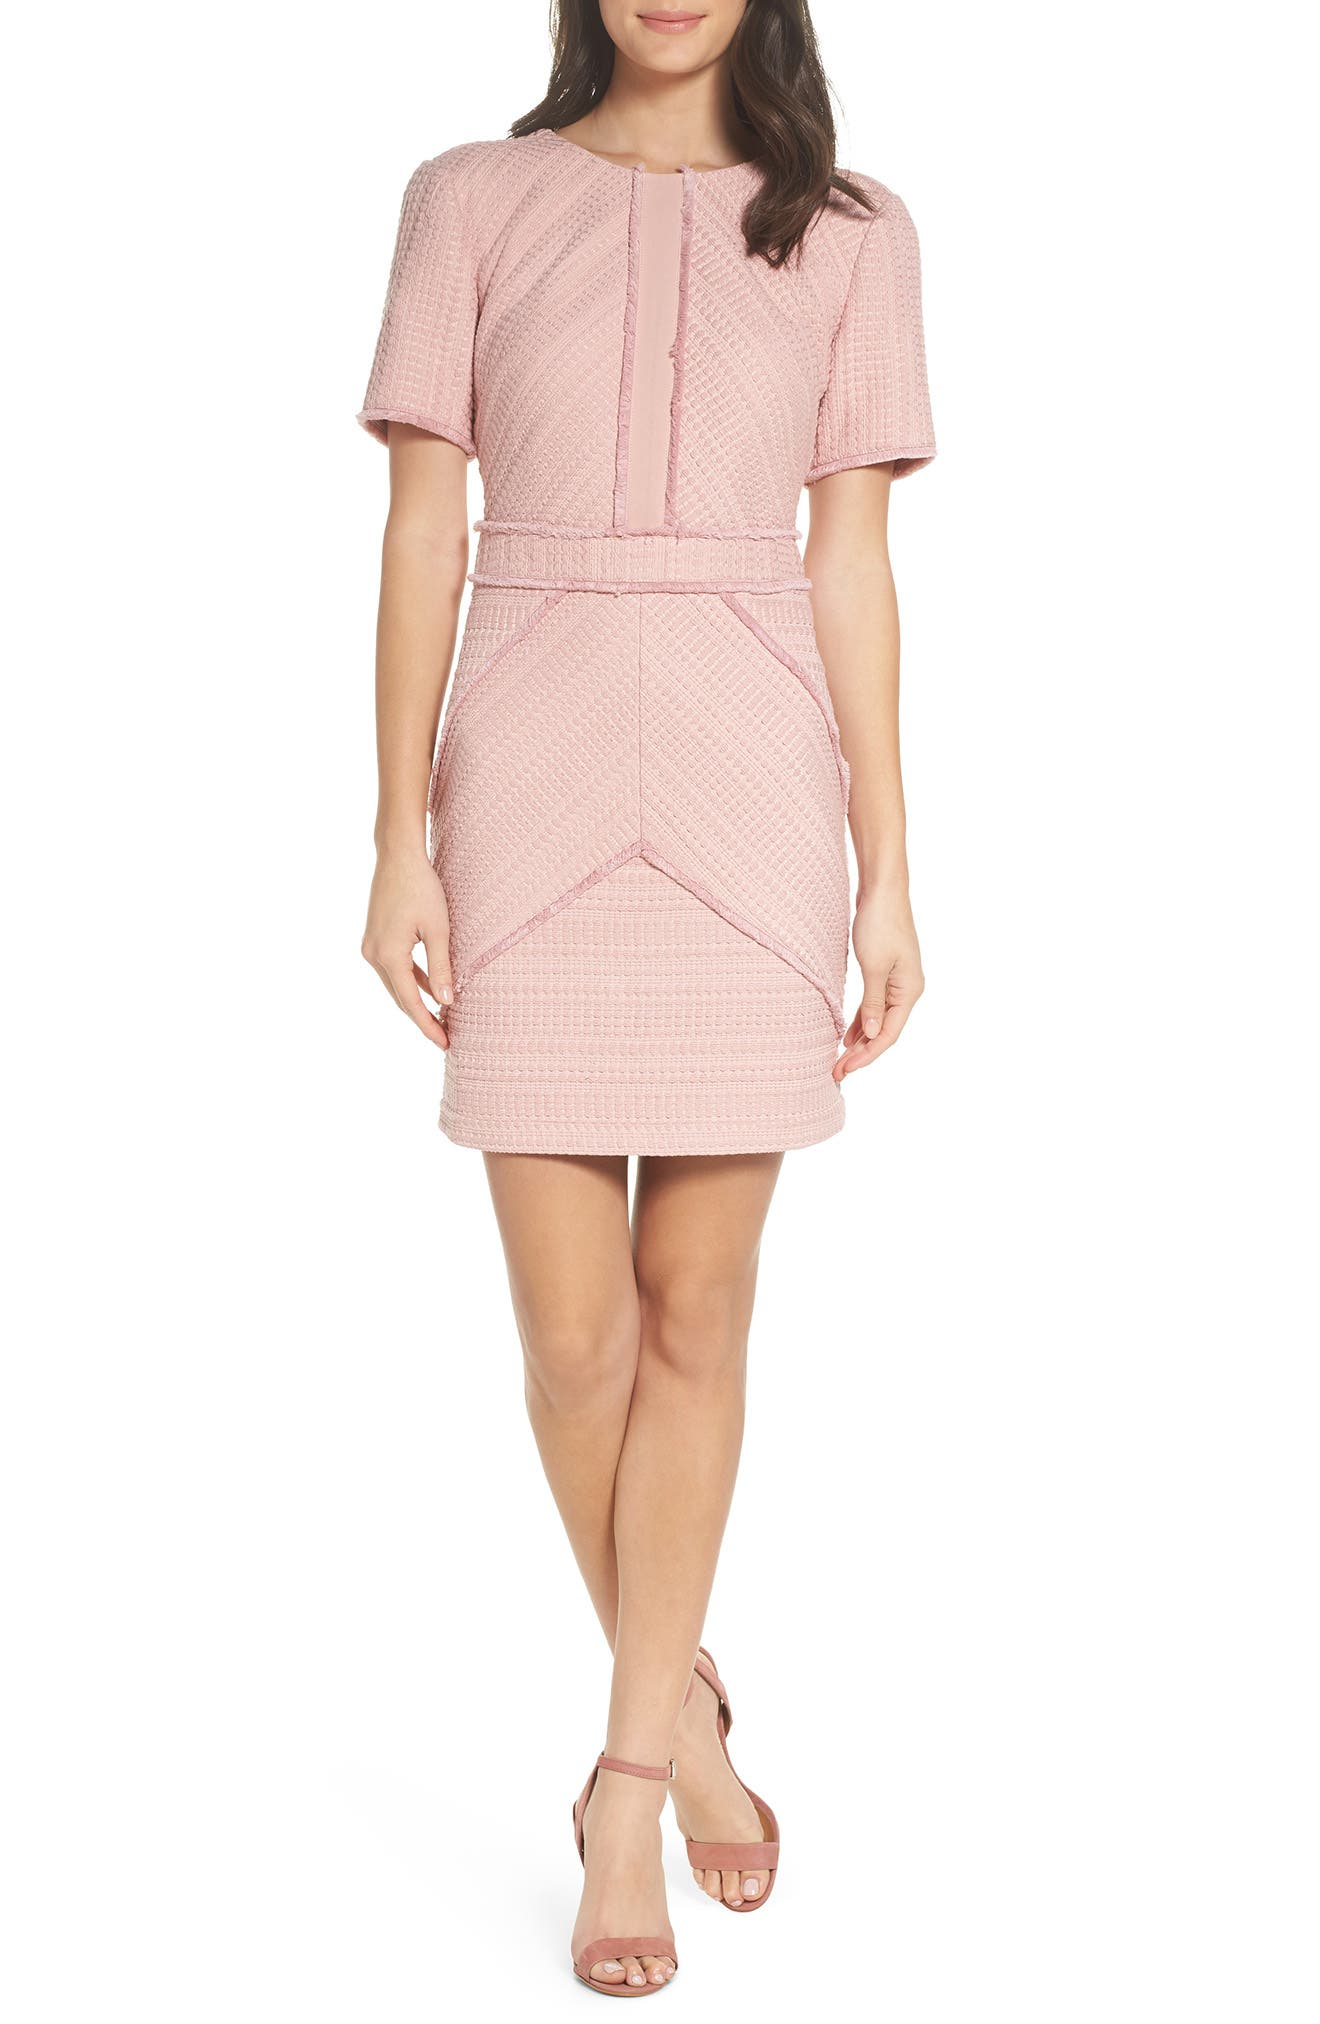 Main Image - Adelyn Rae Tessa Sheath Dress